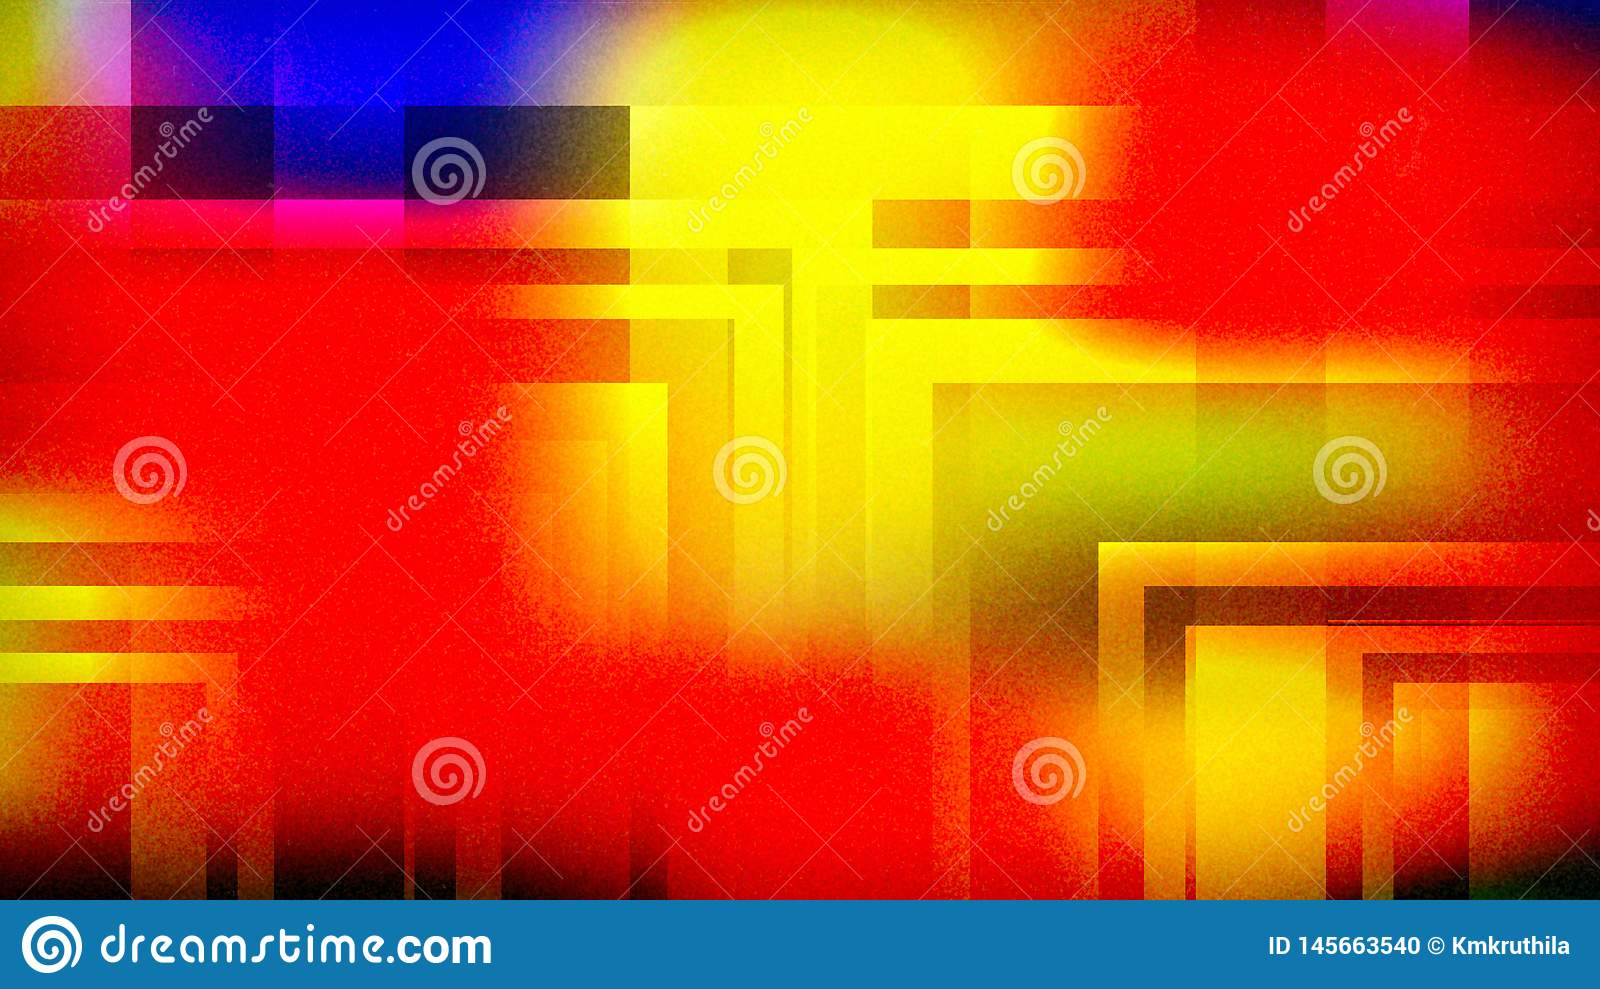 Orange Yellow Red Beautiful elegant Illustration graphic art design Background